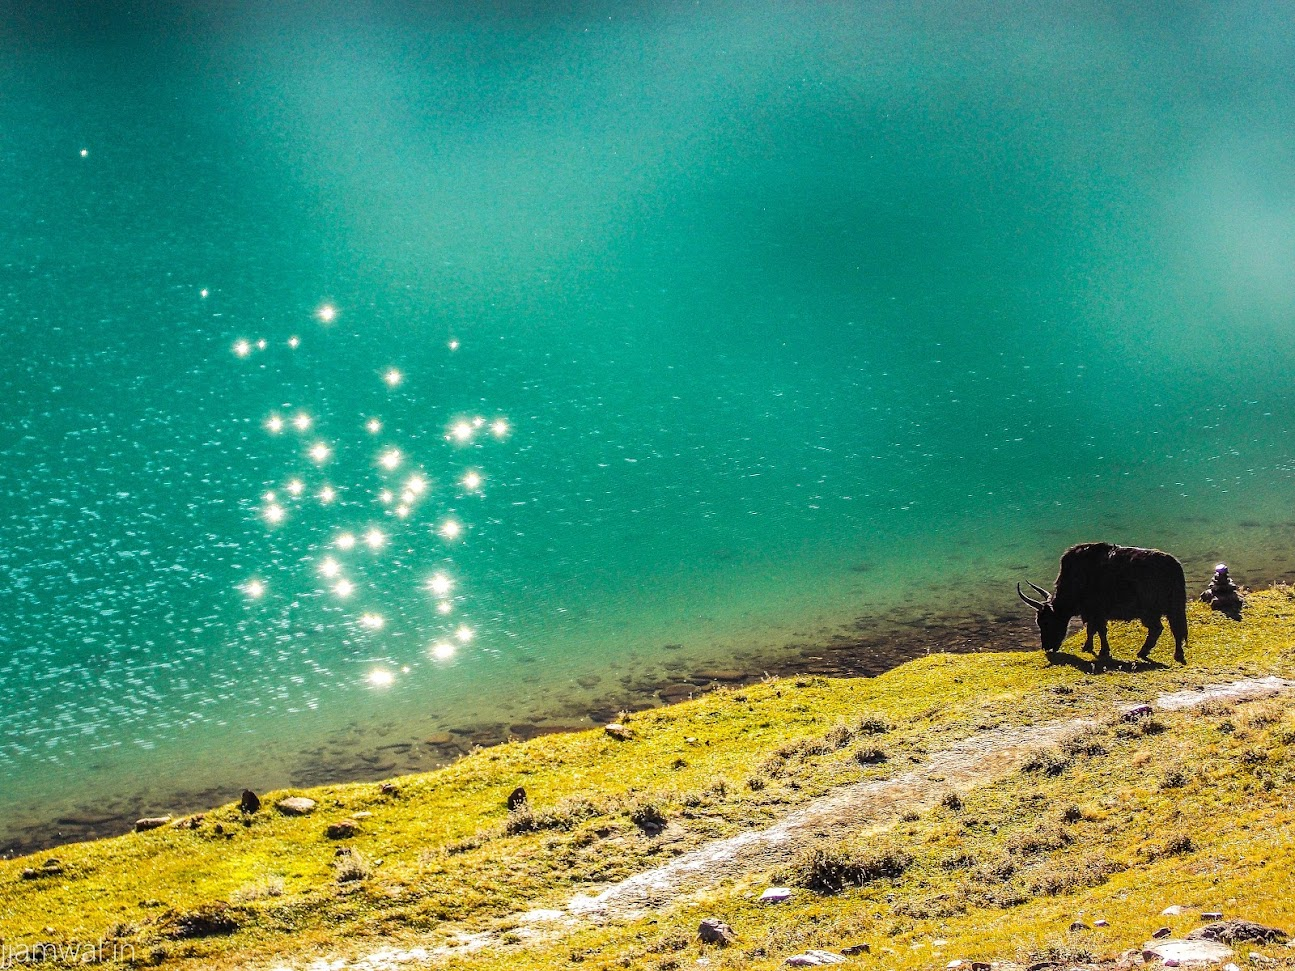 A yak grazing near chandrataal lake